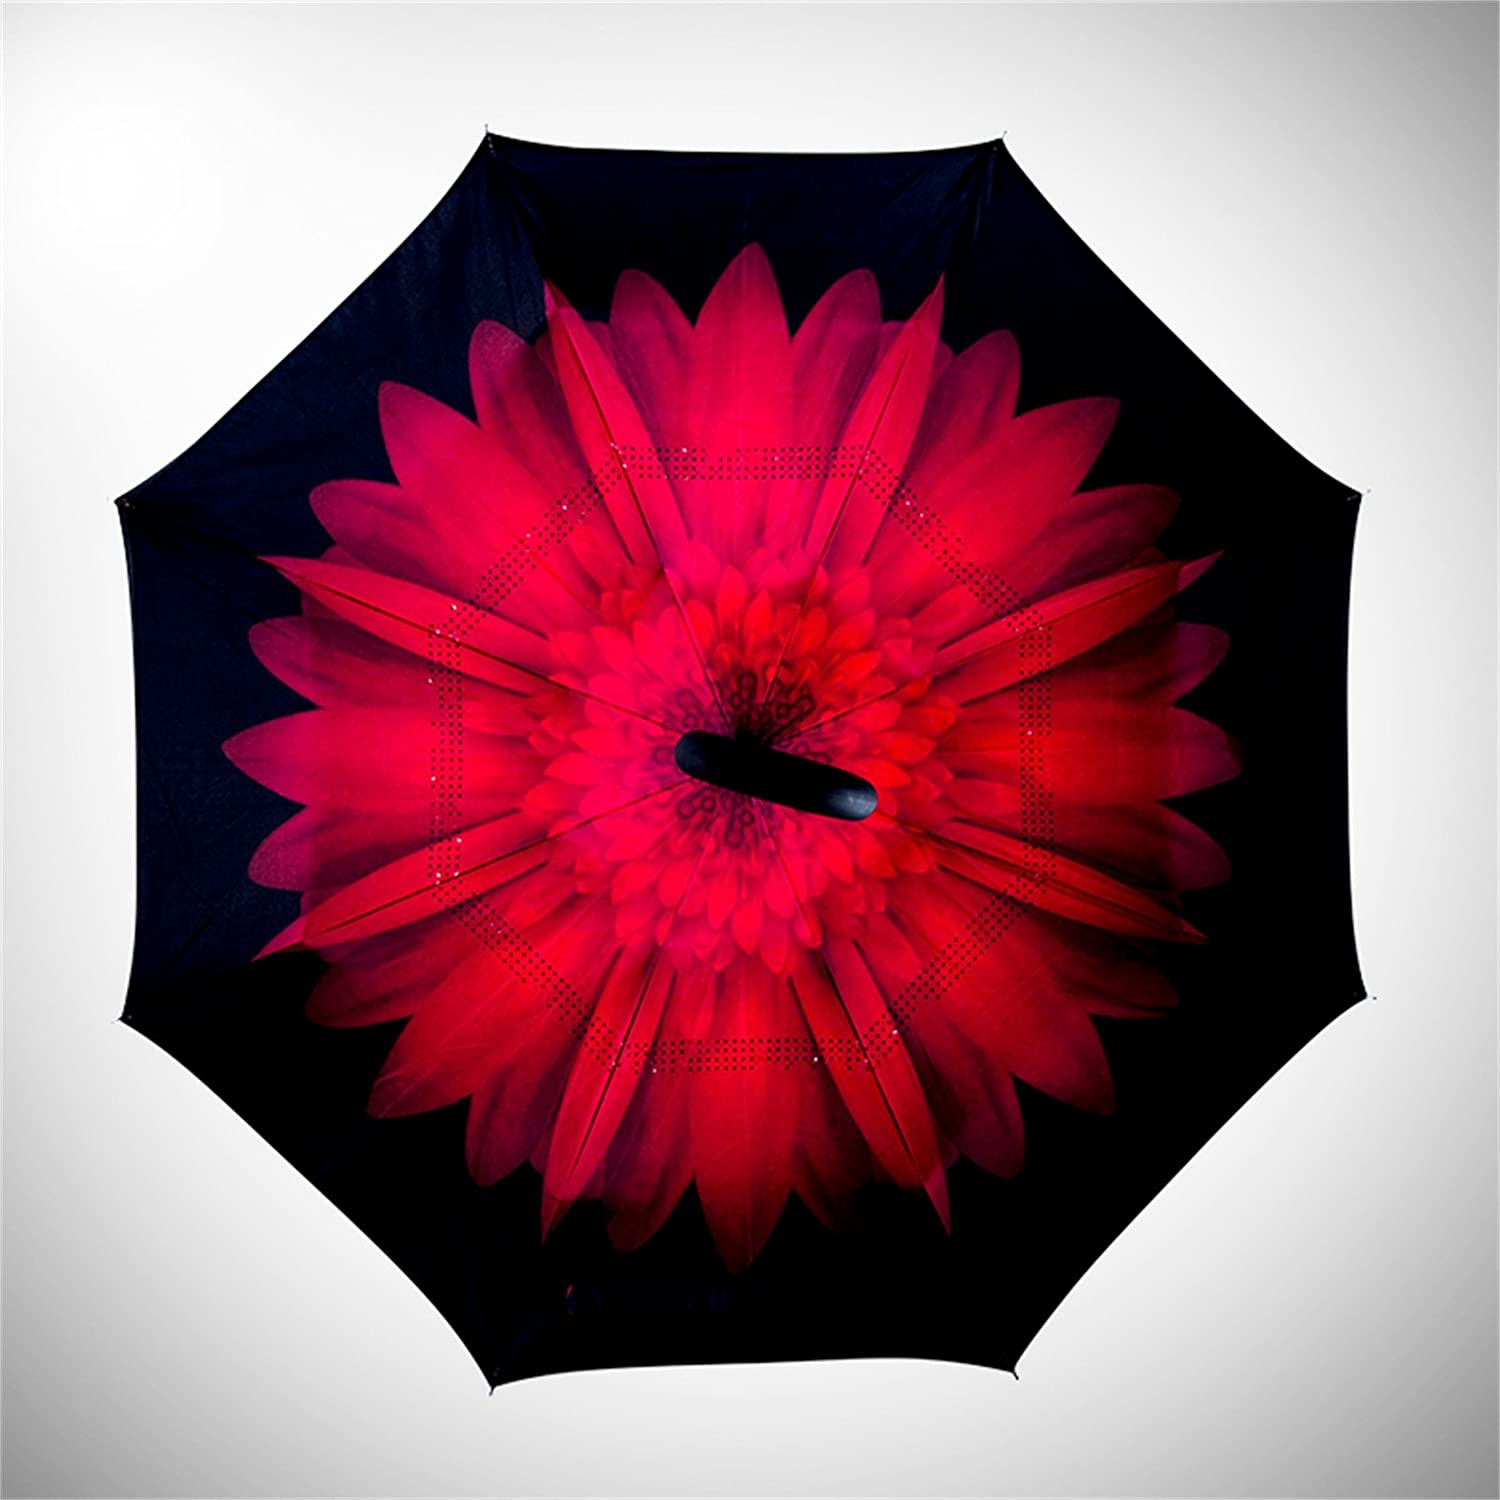 Amazon.com: Longay C-Type Umbrella Handle can Stand rain Shine Dual Umbrella,Pink: Clothing